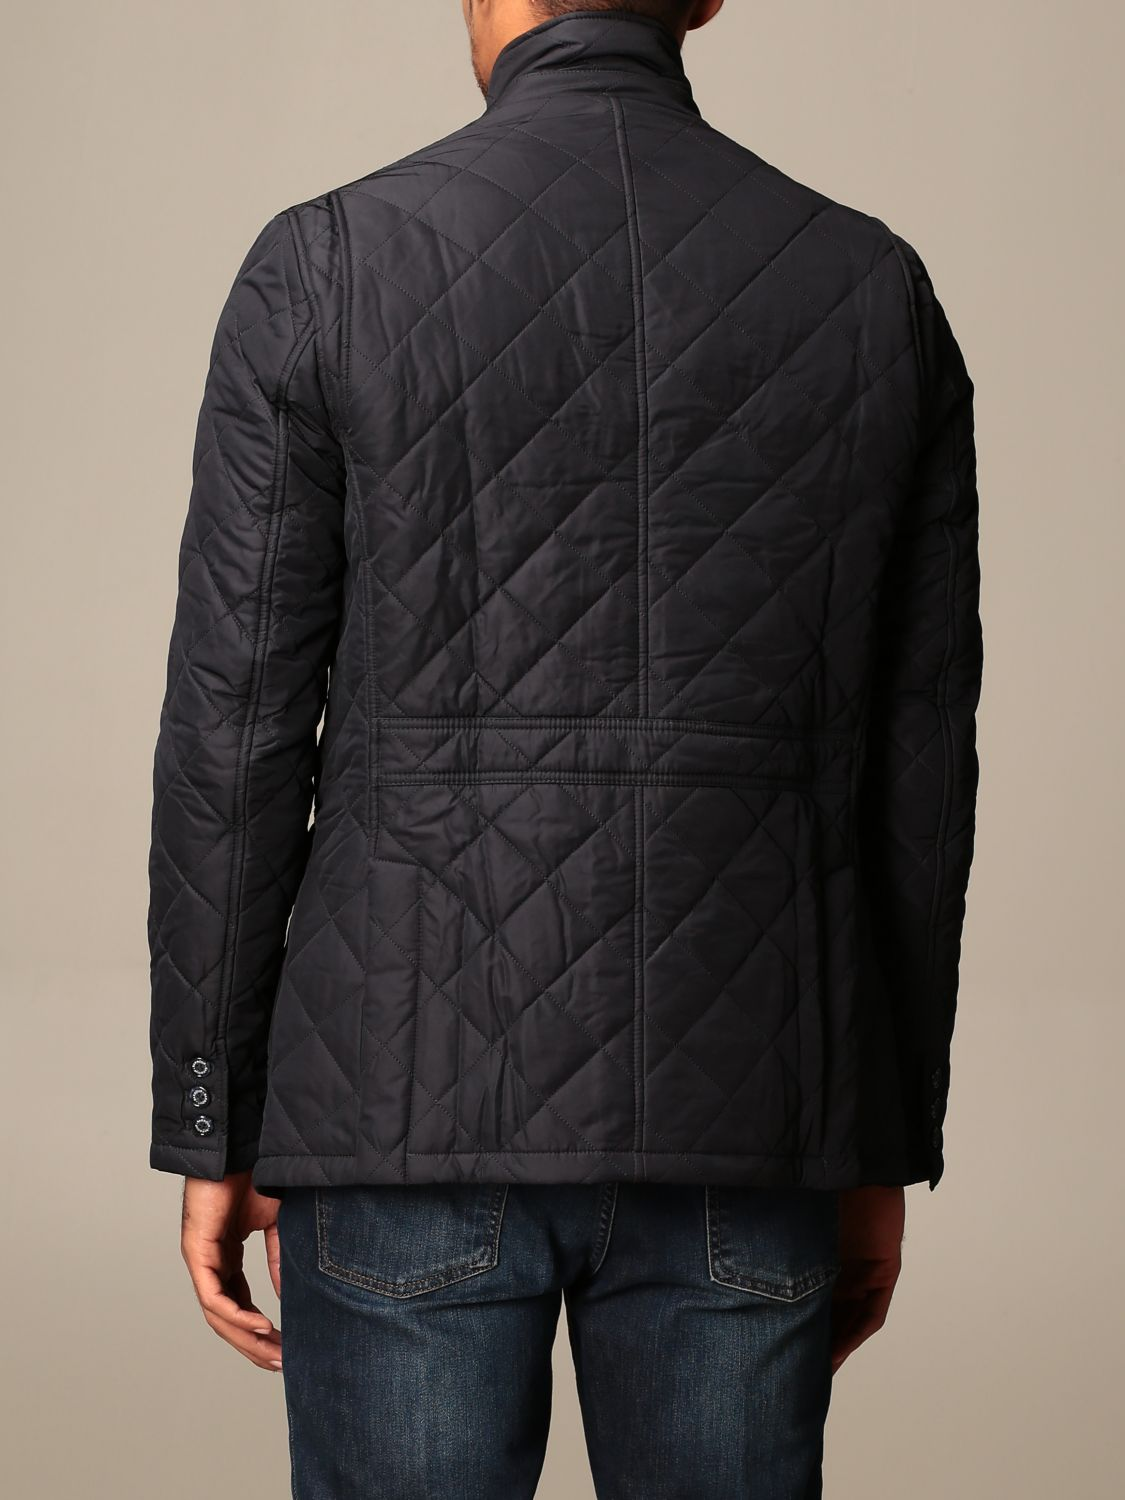 Jacket Barbour: Classic Barbour diamond quilted jacket blue 2